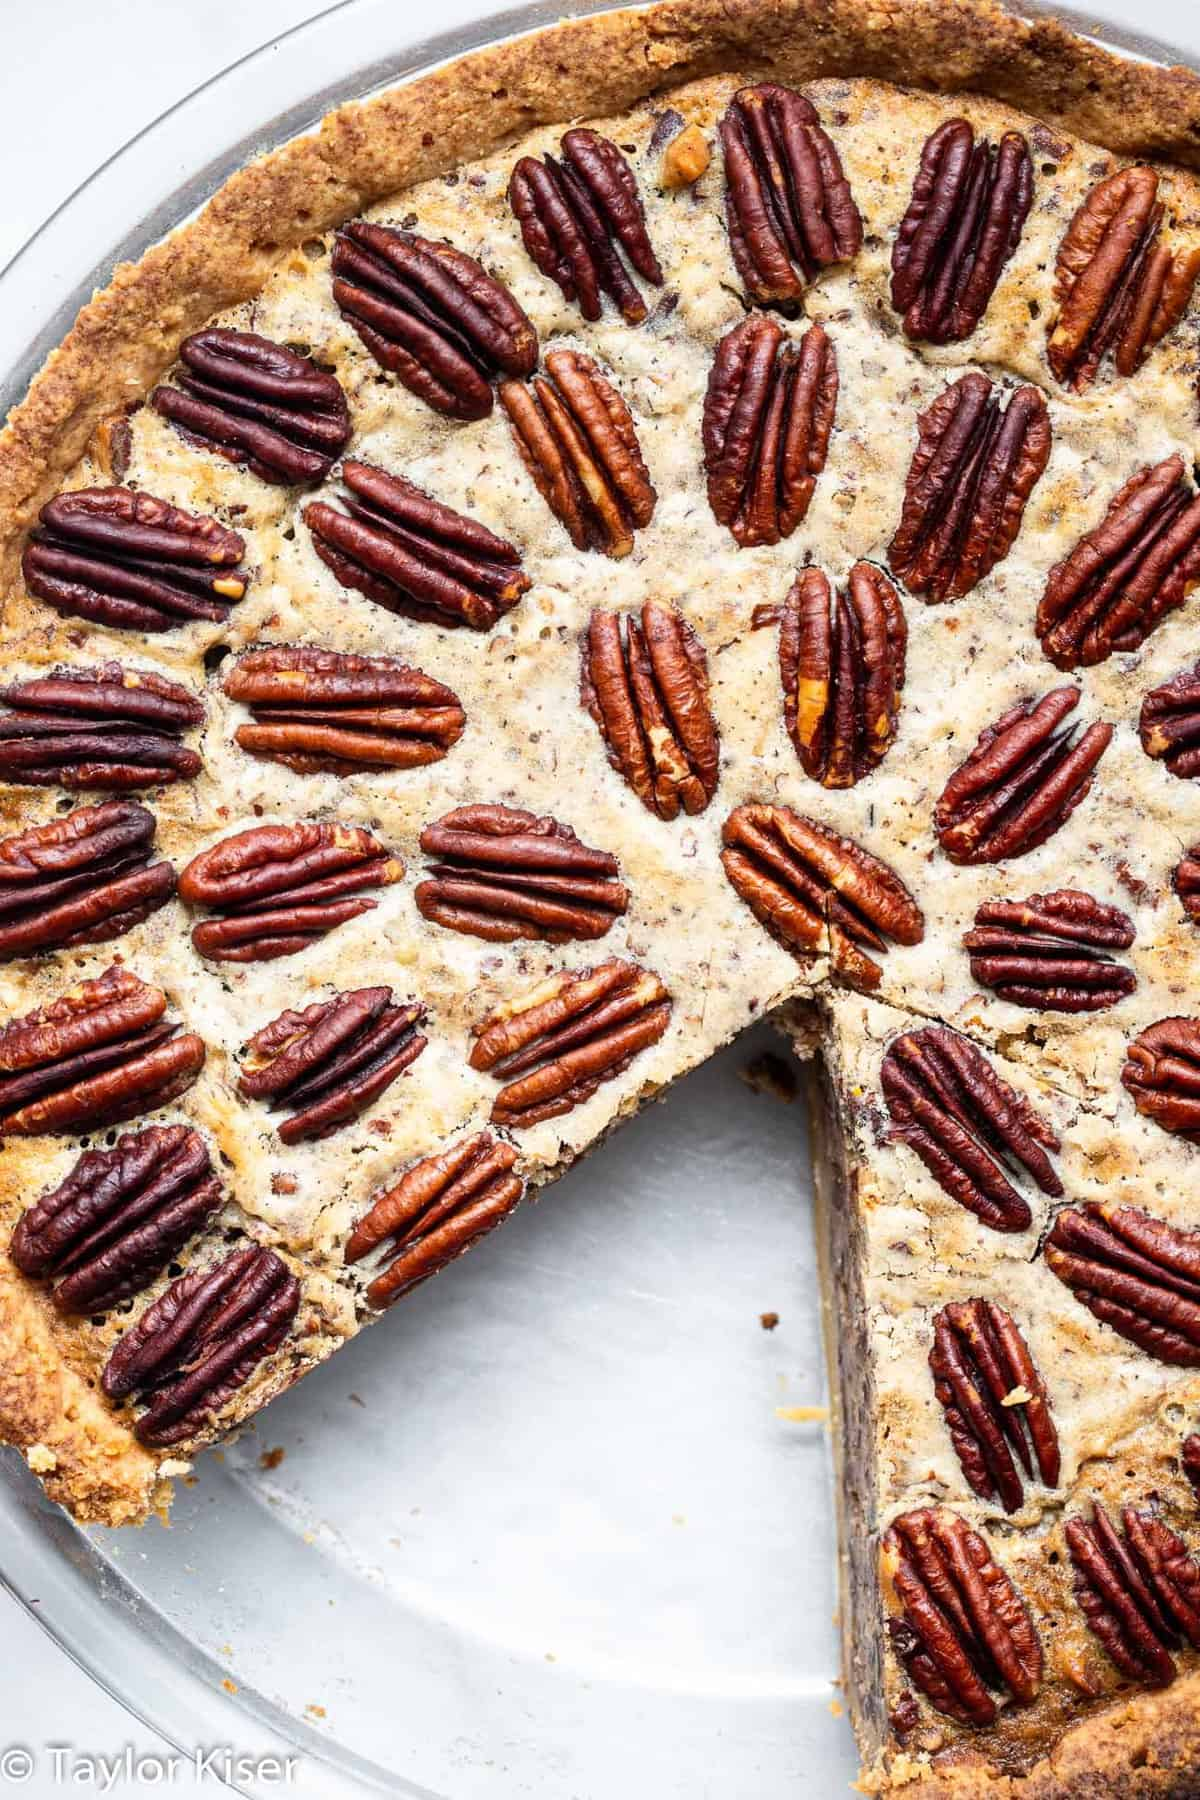 Keto pecan pie with a slice taken out